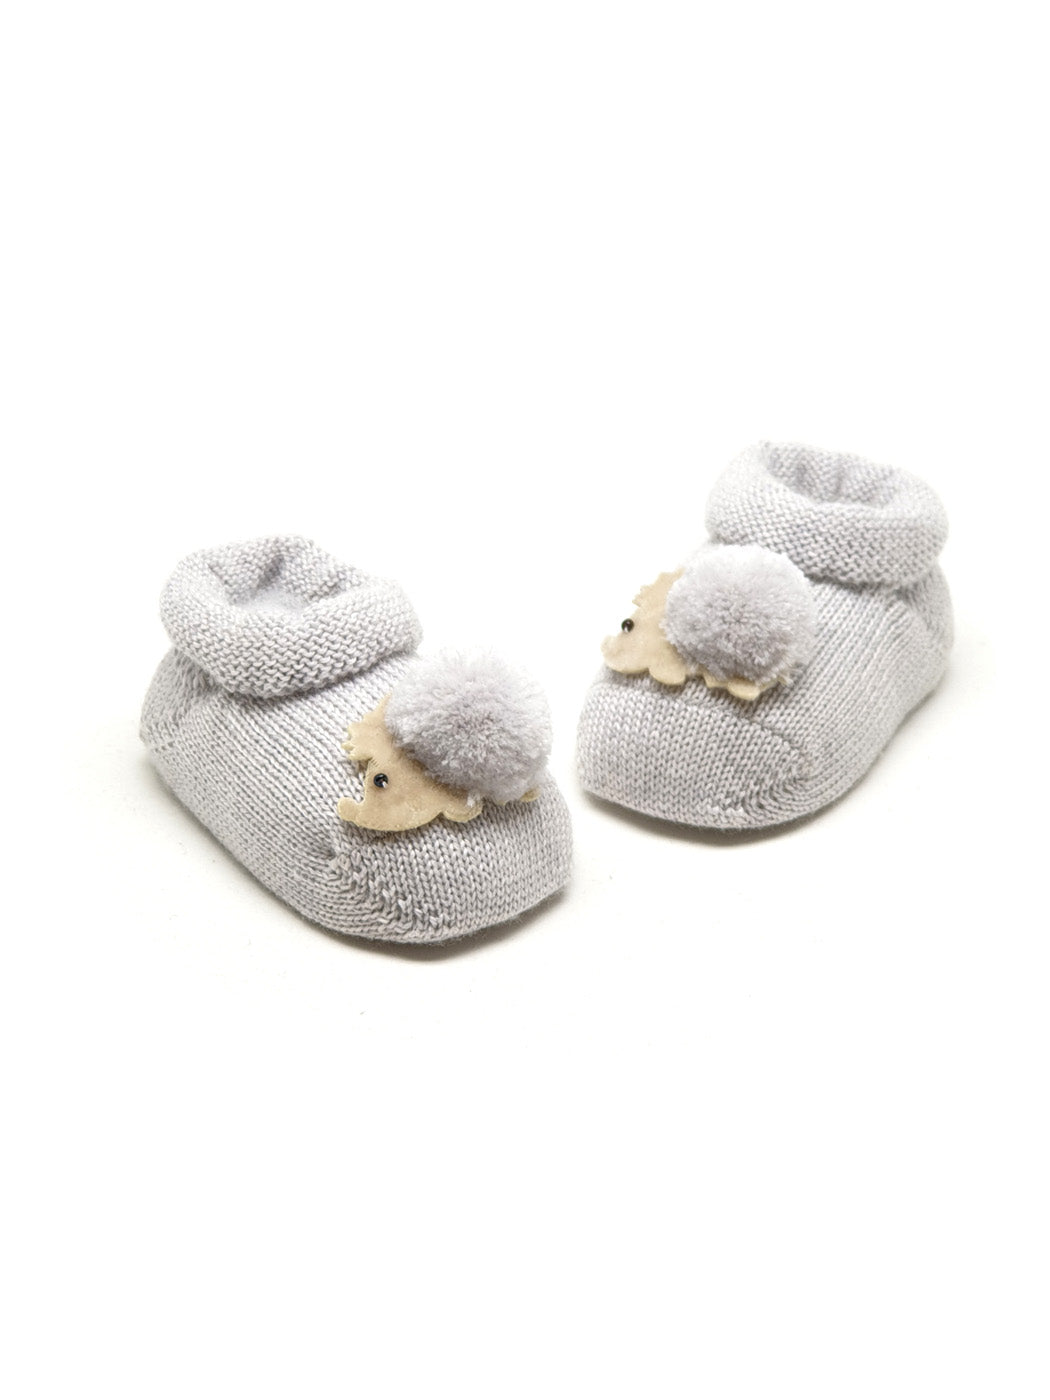 Story Loris baby shoes